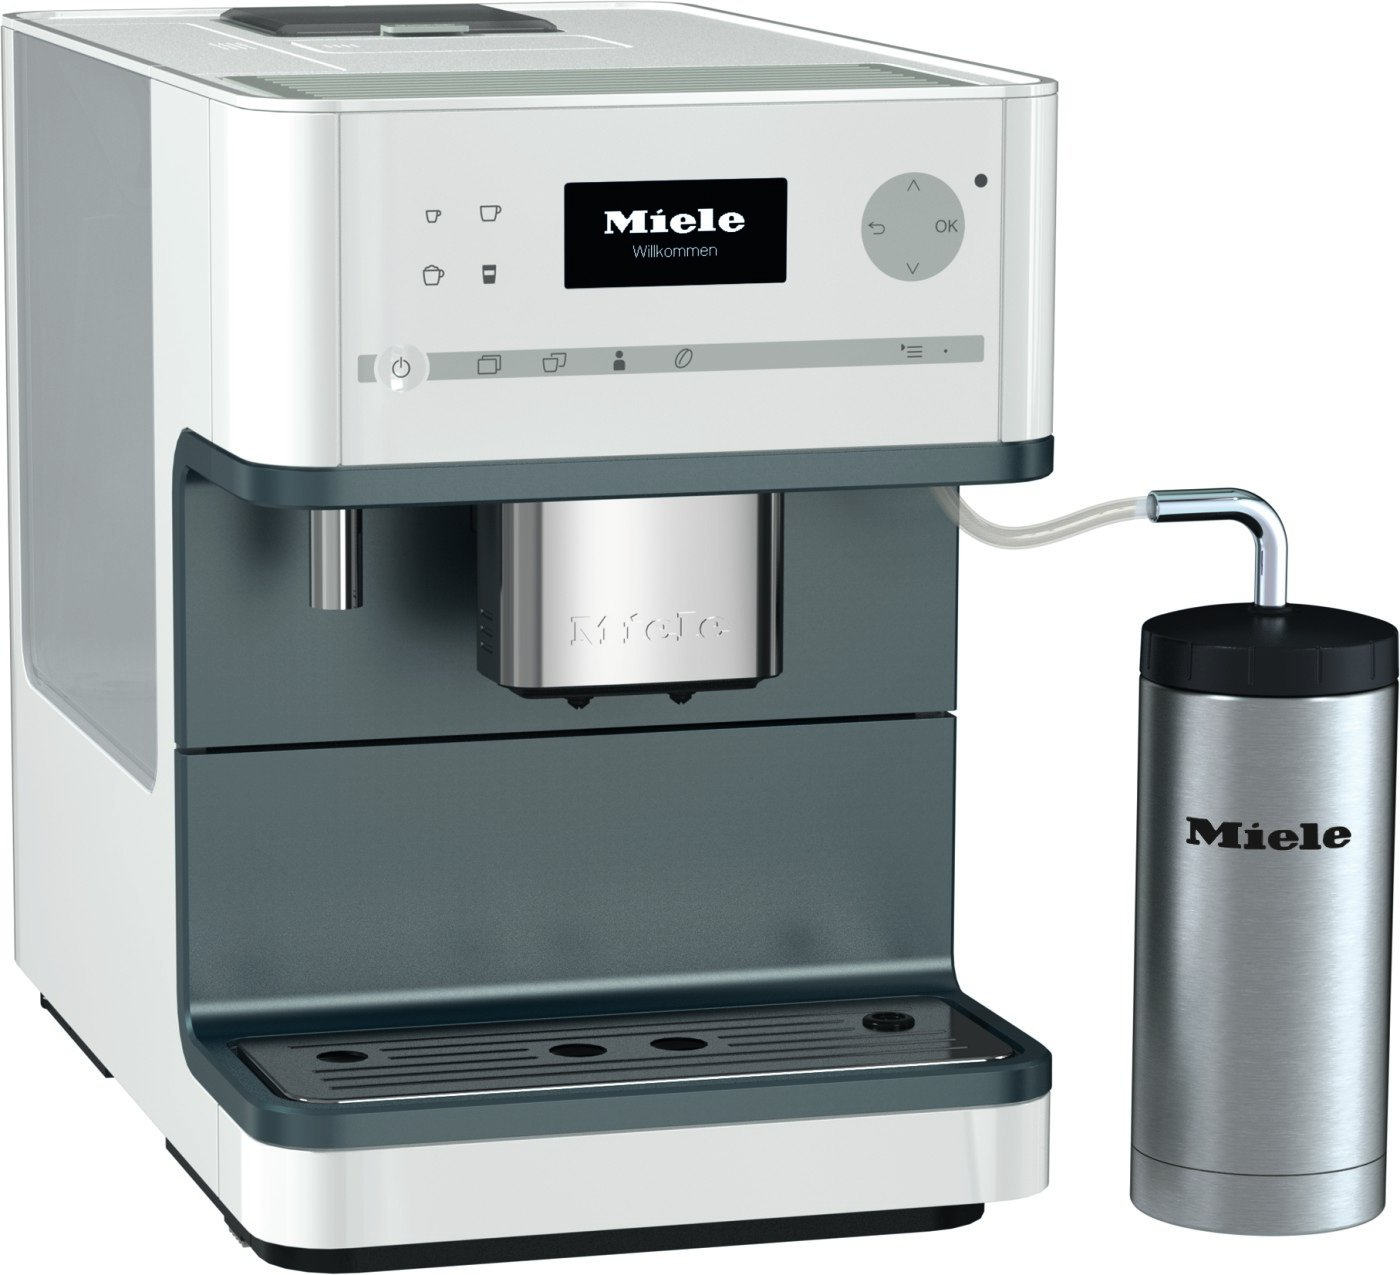 auto best cup reviews office coffee makers maker t for plumbed plumbing drip